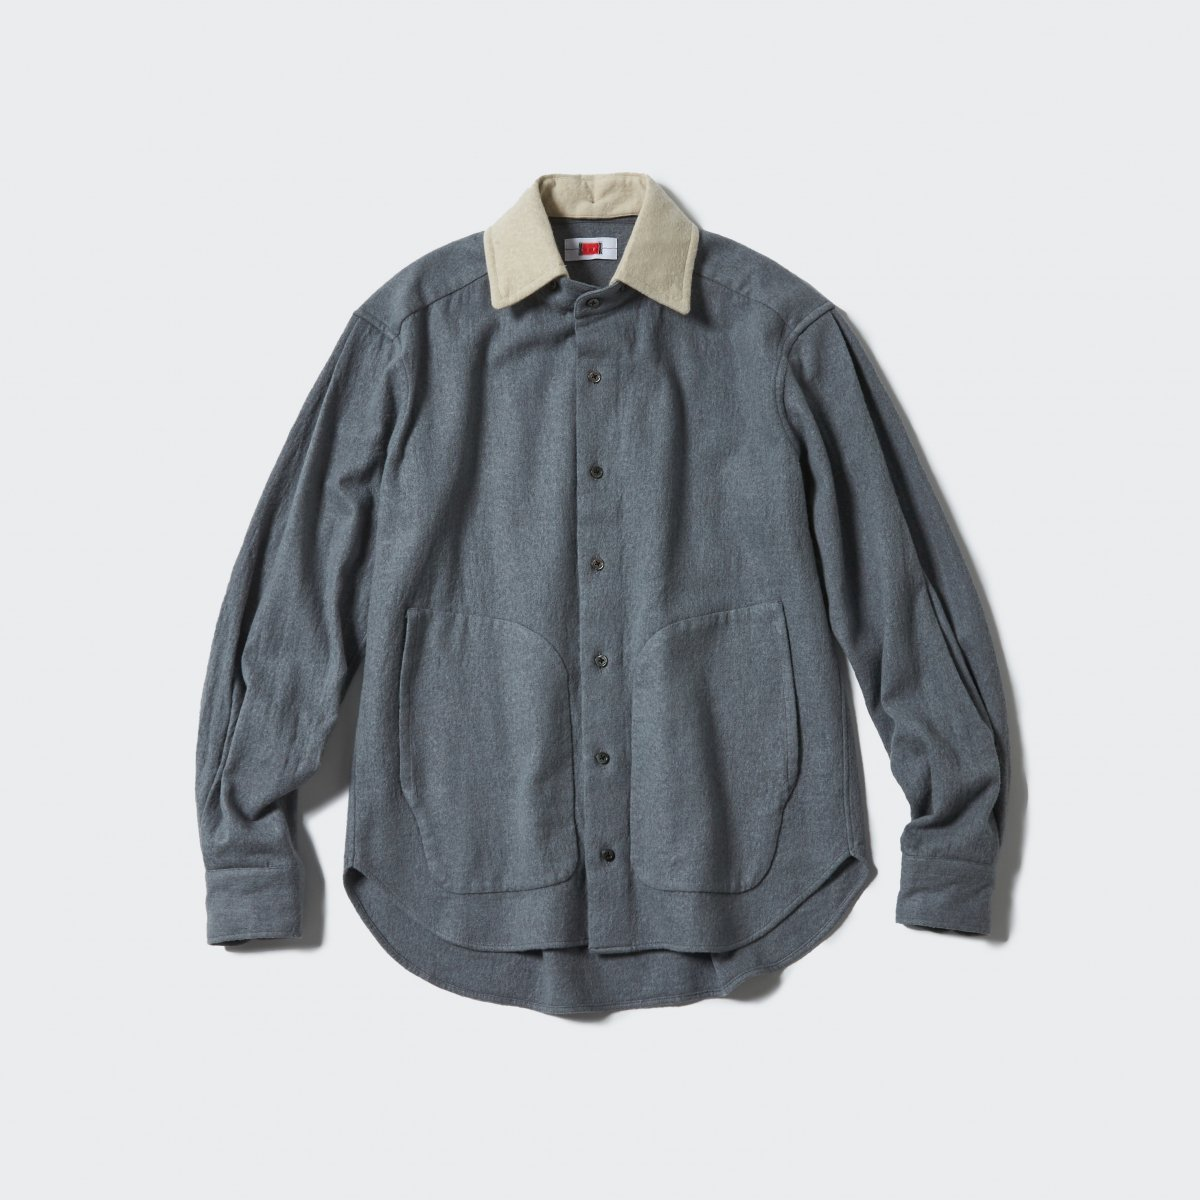 <img class='new_mark_img1' src='https://img.shop-pro.jp/img/new/icons5.gif' style='border:none;display:inline;margin:0px;padding:0px;width:auto;' />【2021AW】RPC HAIRBALL SHIRT | GREY+BEIGE